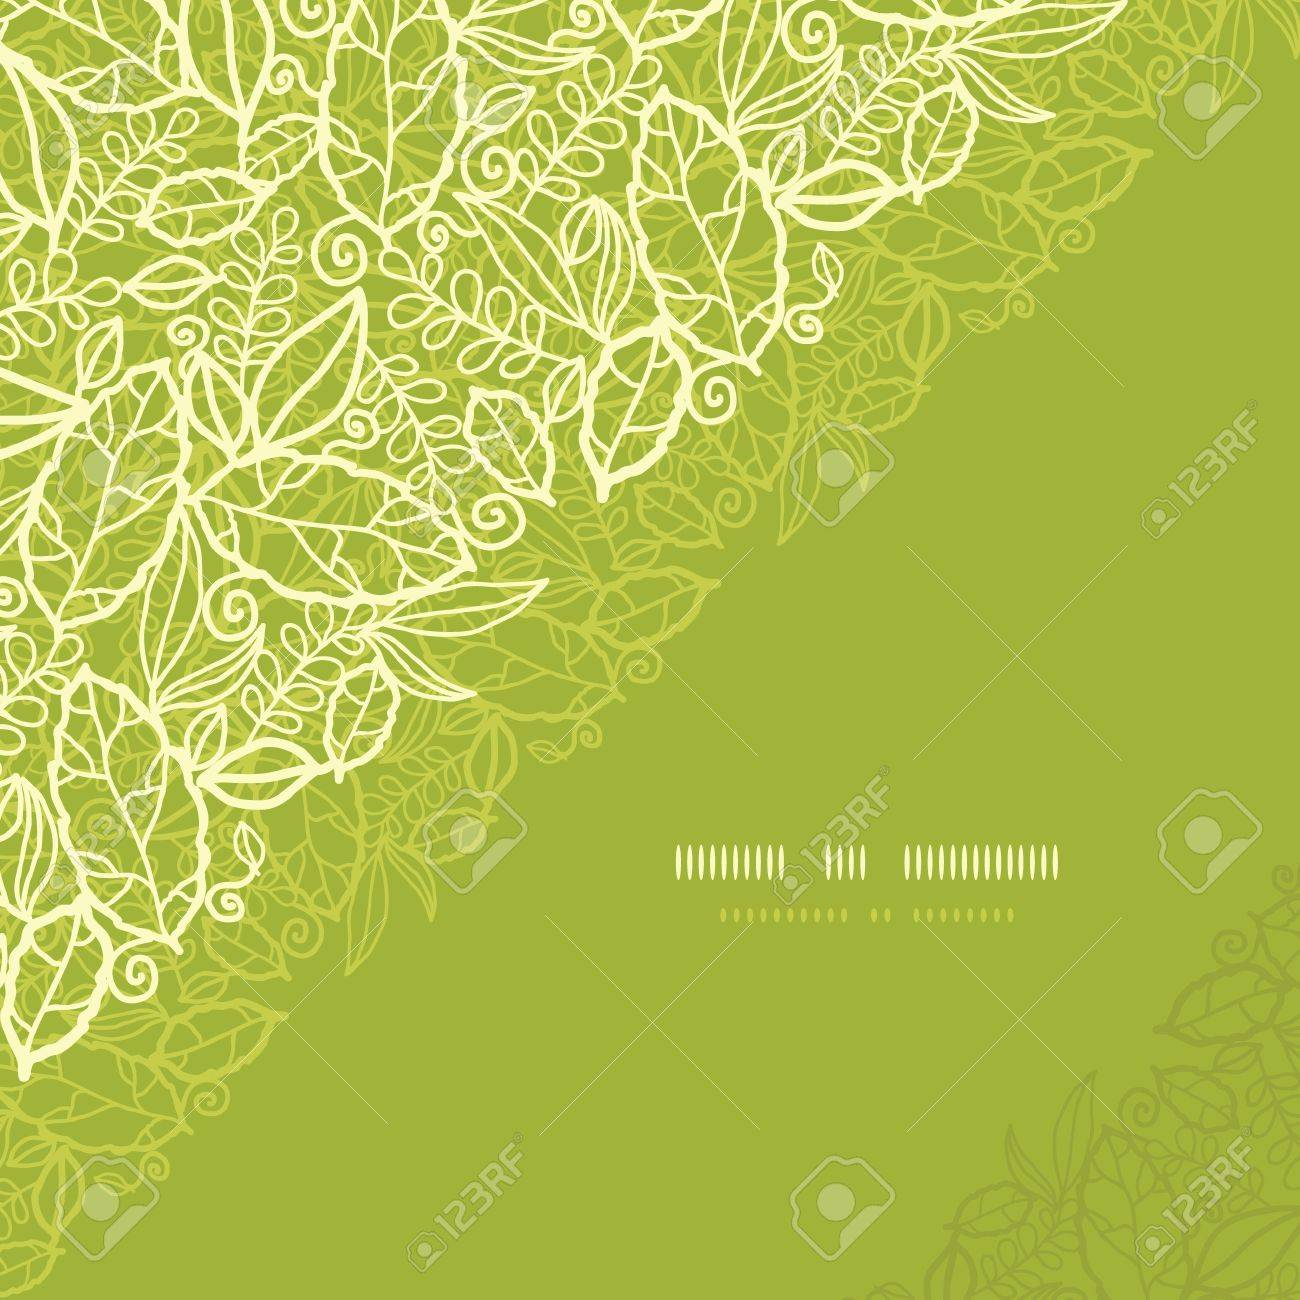 Green lace leaves corner seamless pattern background Stock Vector - 17590974